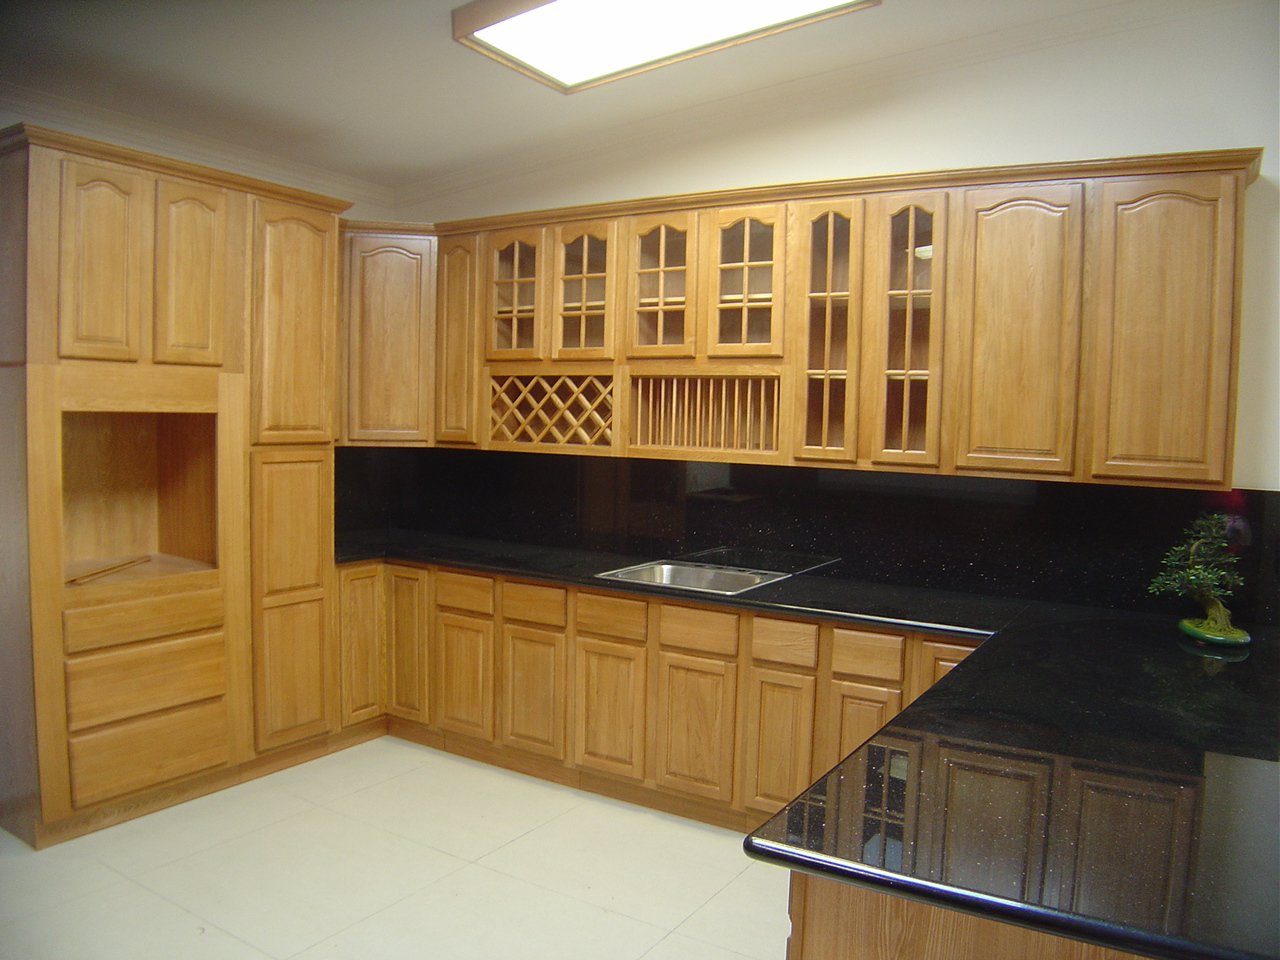 Impressive Kitchen Design Ideas with Oak Cabinets 1280 x 960 · 557 kB · jpeg